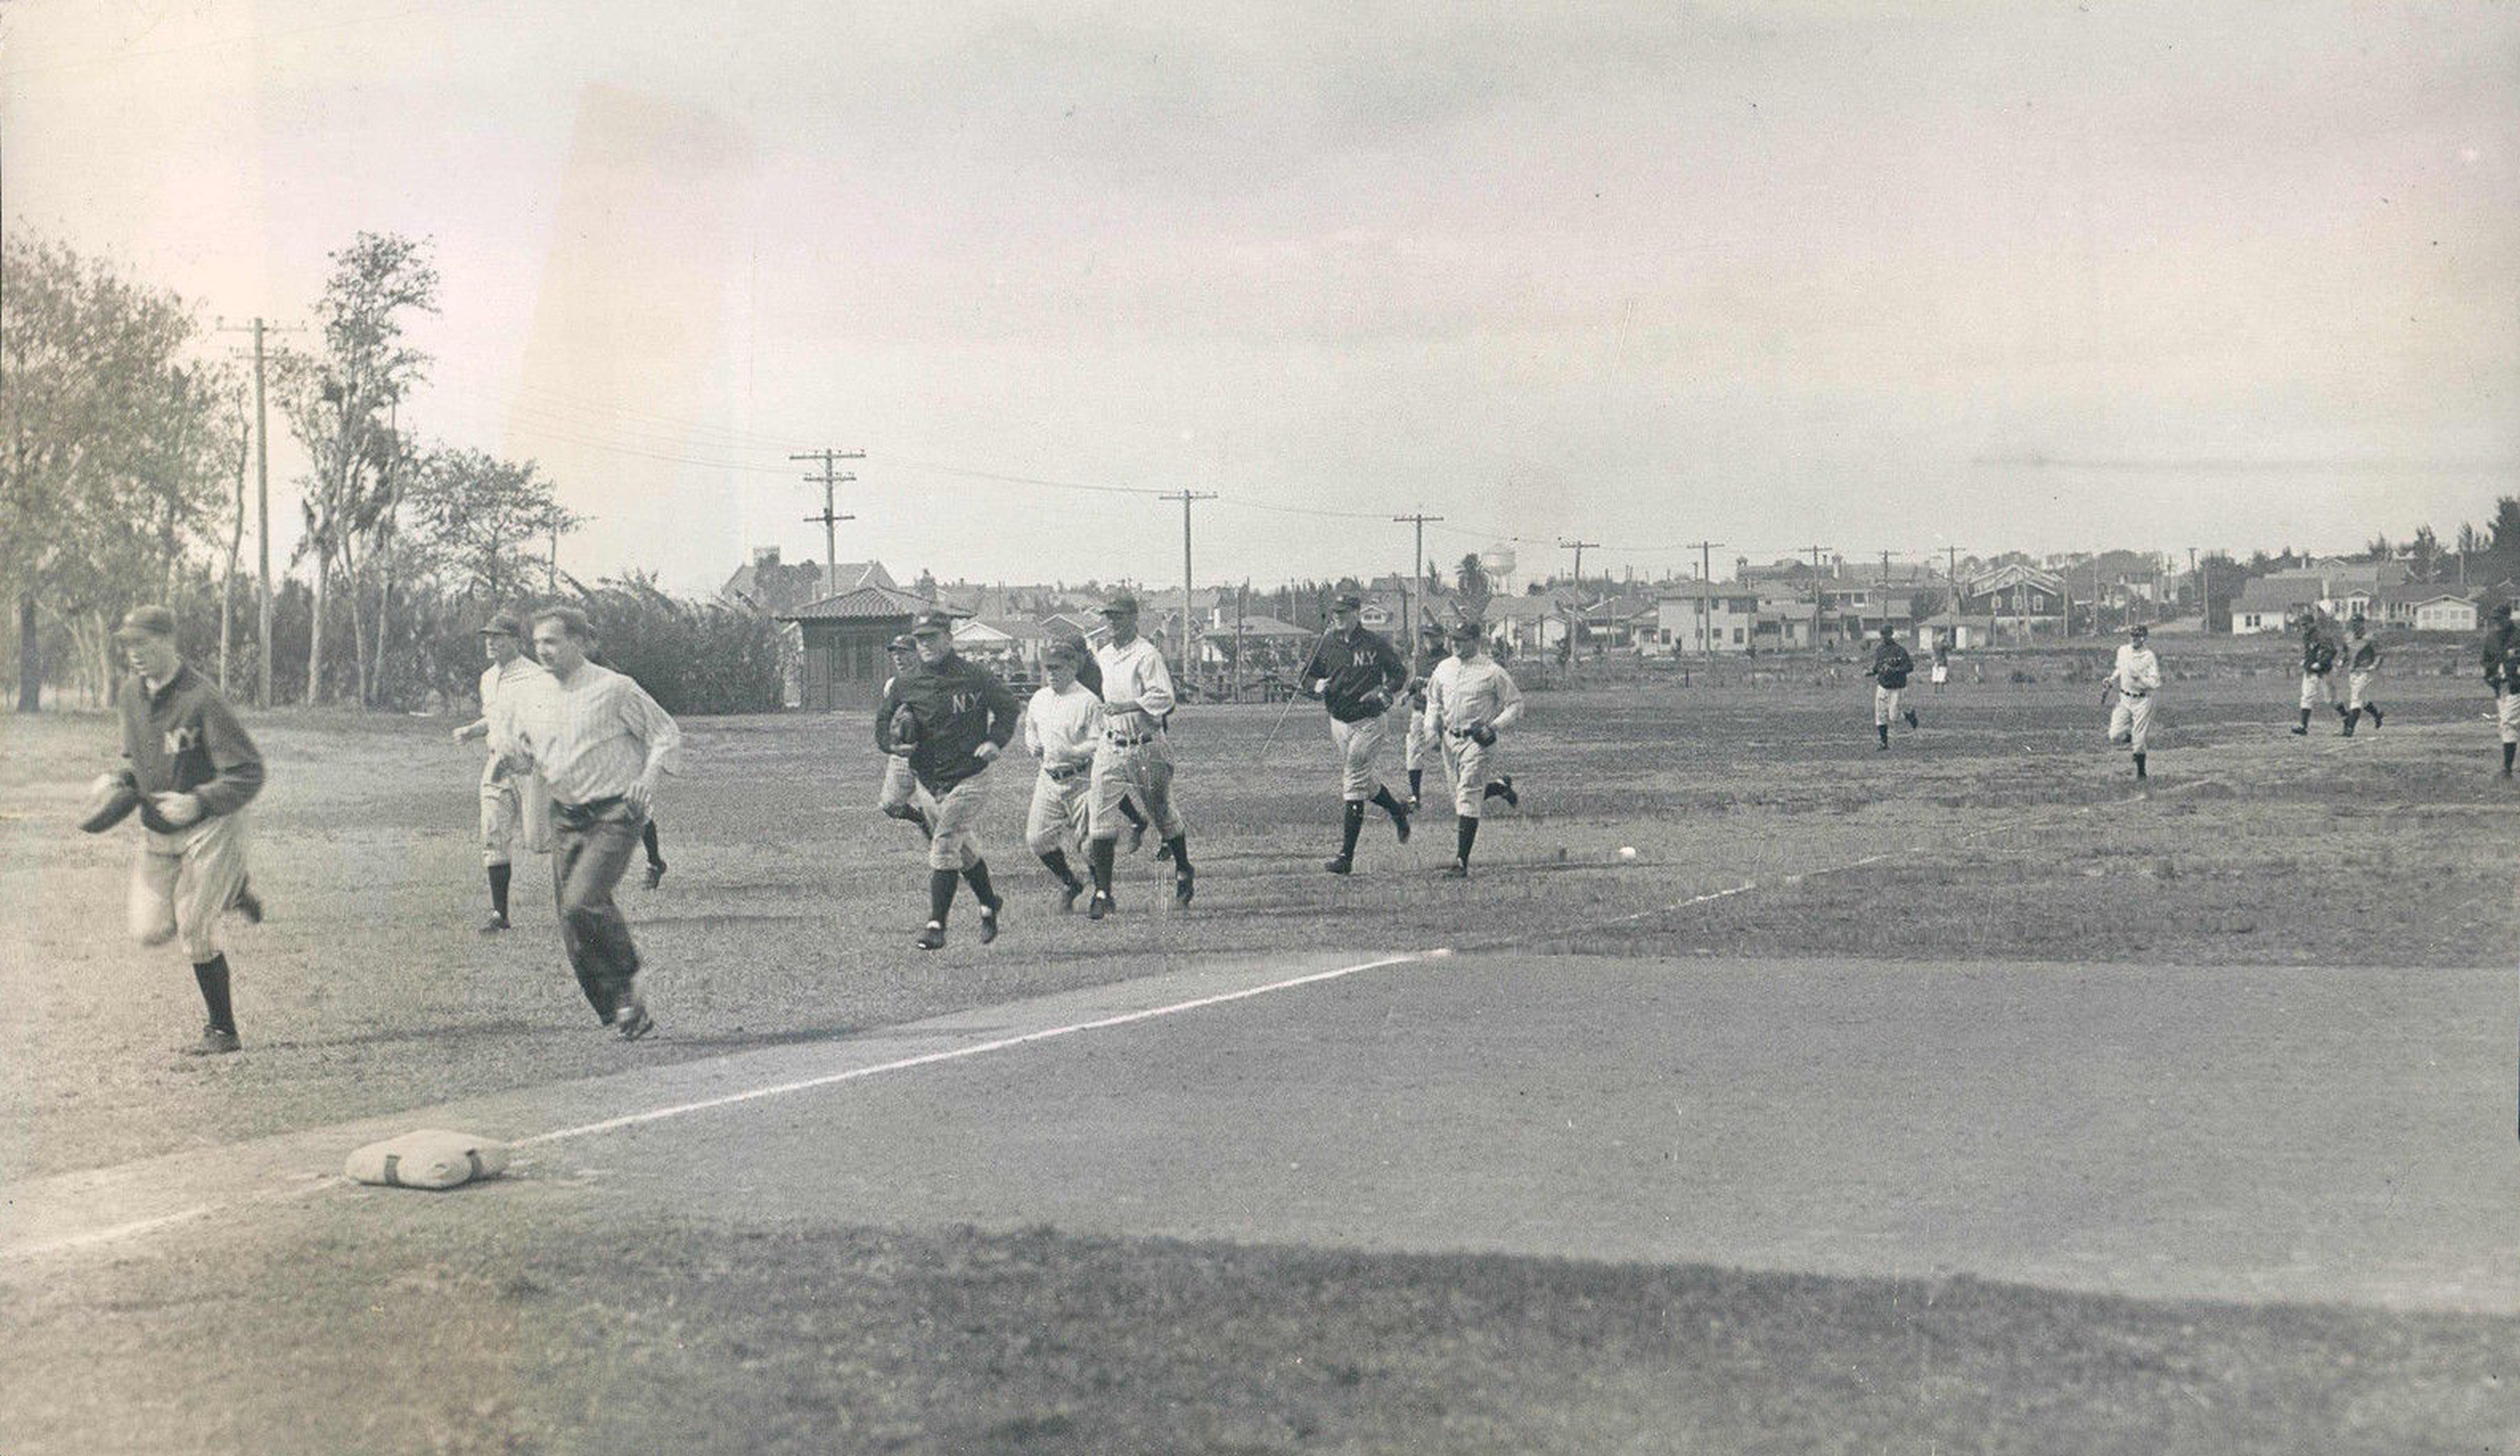 New York Teams Spring Training Photos 1910's, 20's and 30's